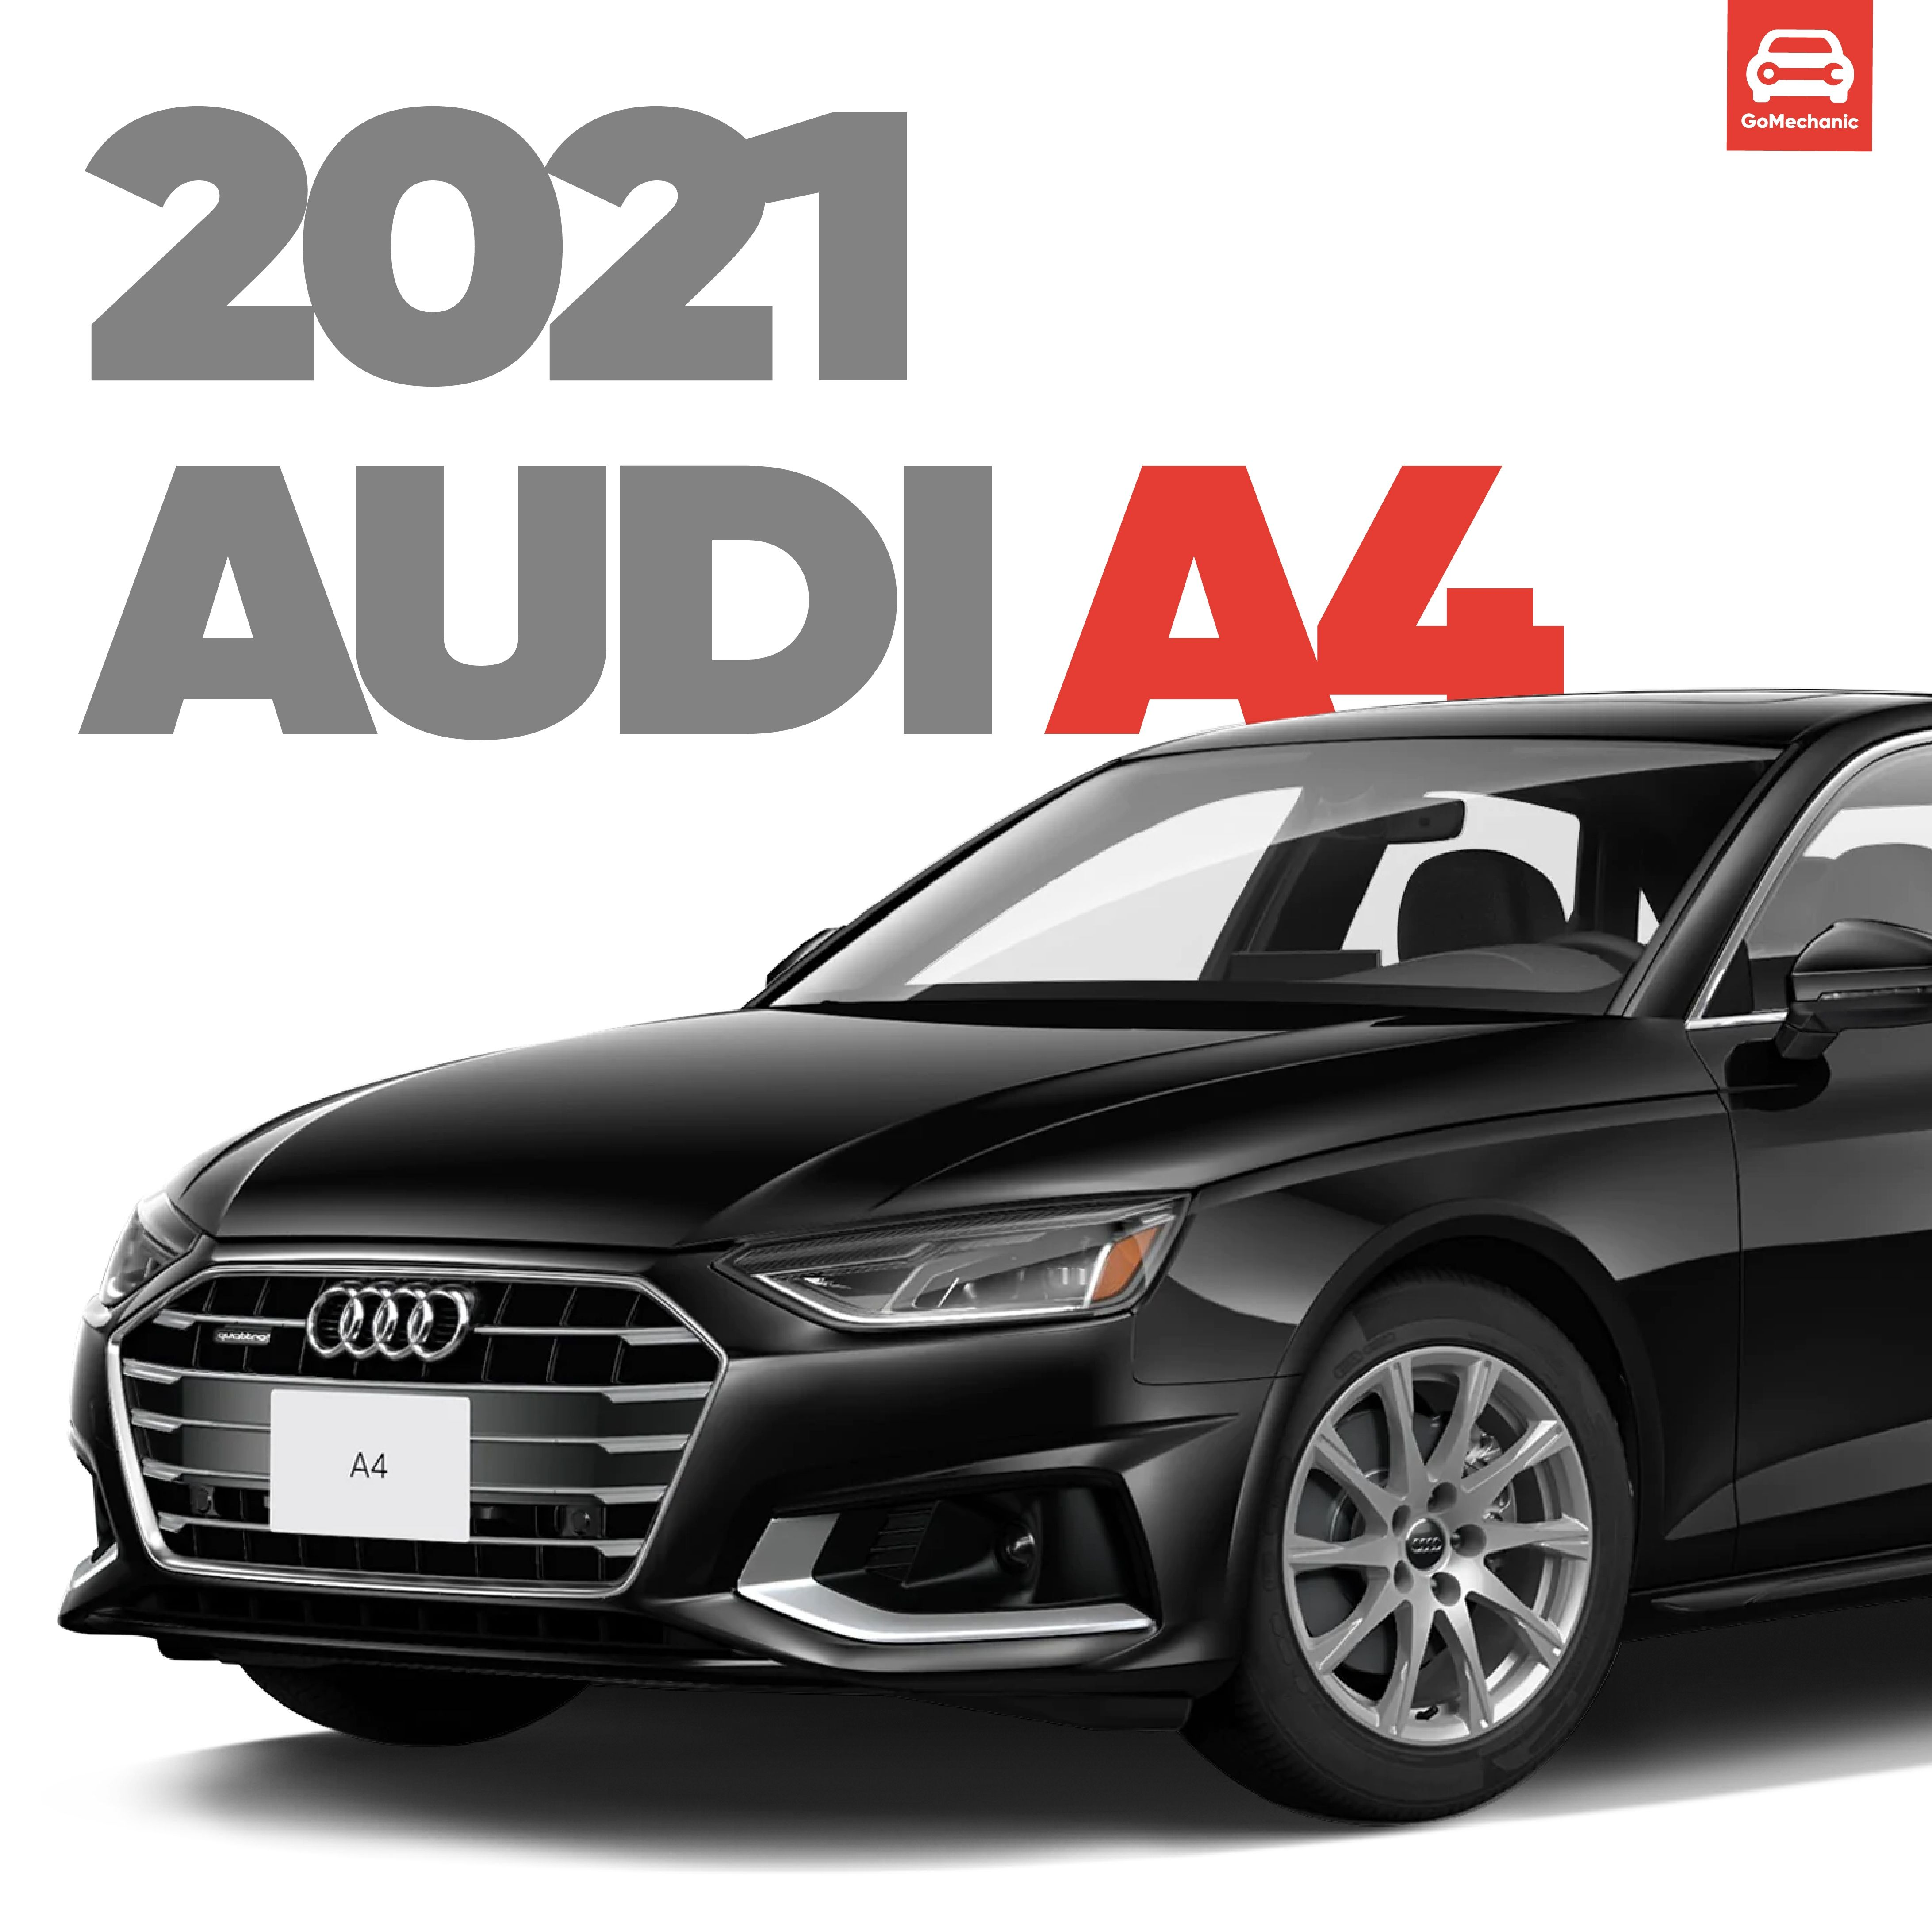 2021 Audi A4 Launched At 42 34 Lakhs Also Gets A New Engine In 2021 Audi A4 Audi New Engine